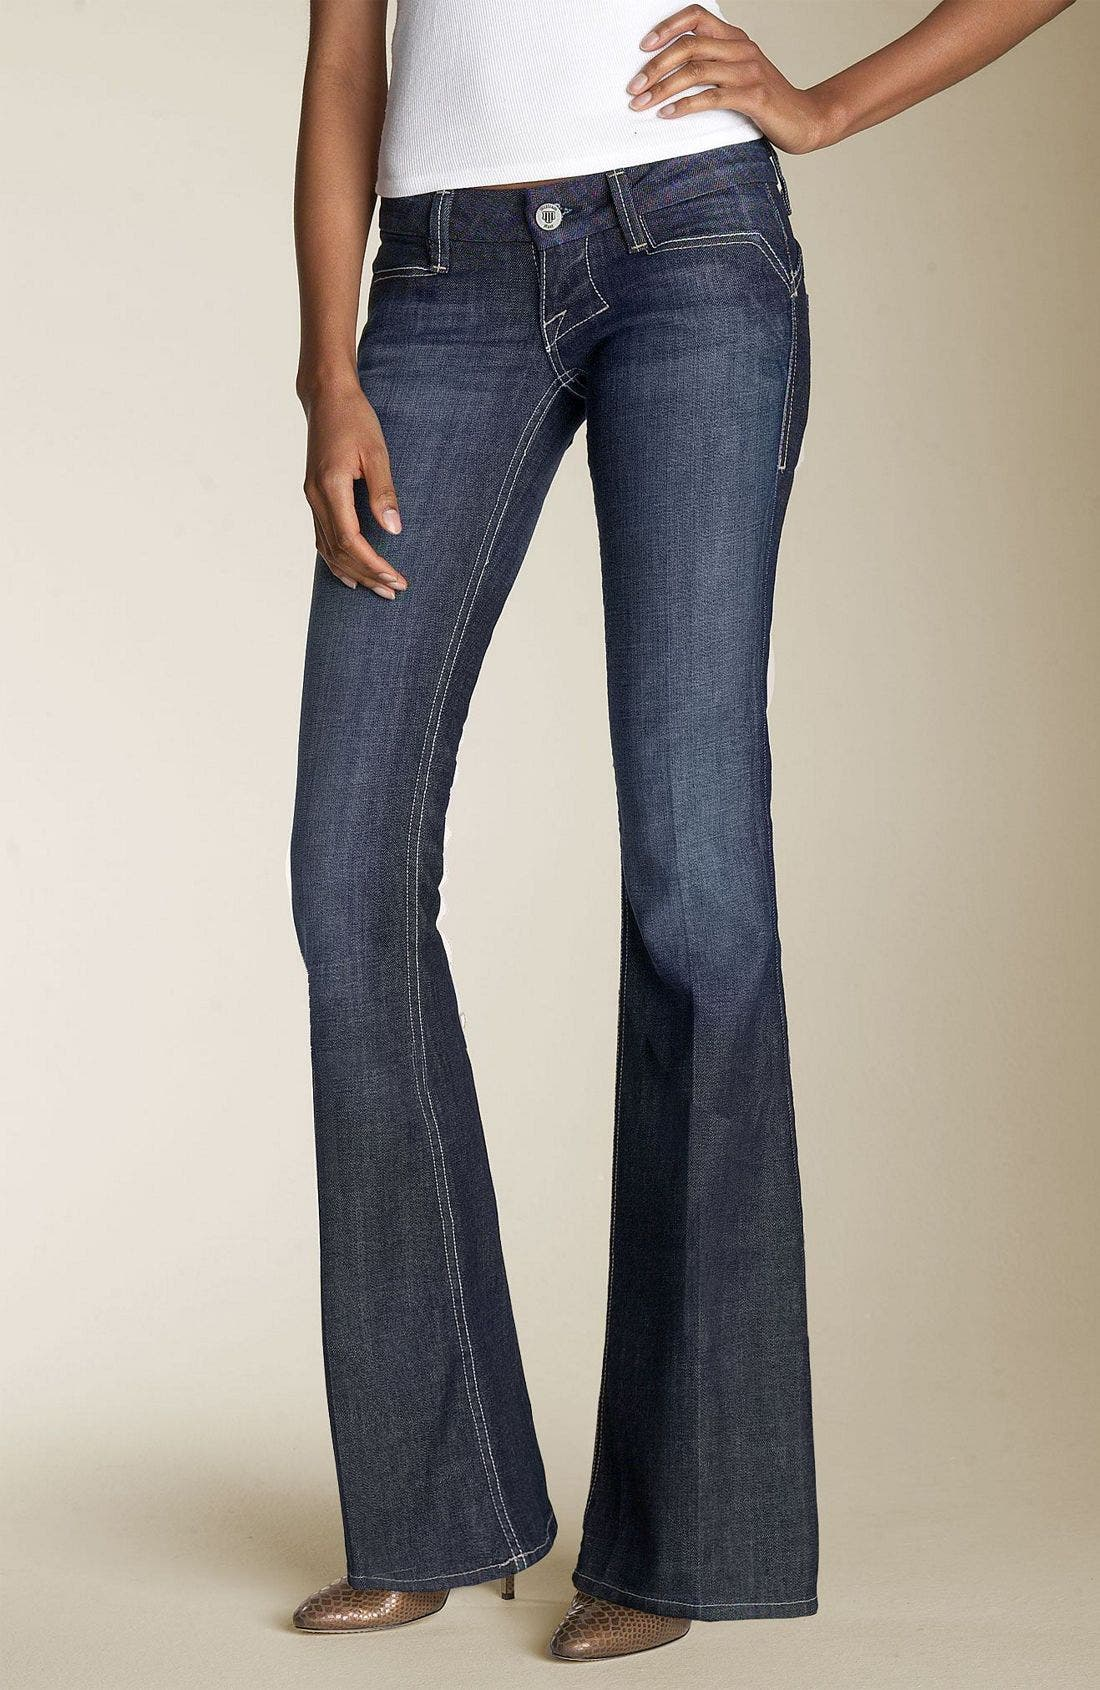 'Savoy' Ultra Low Rise Stretch Jeans,                             Main thumbnail 1, color,                             499